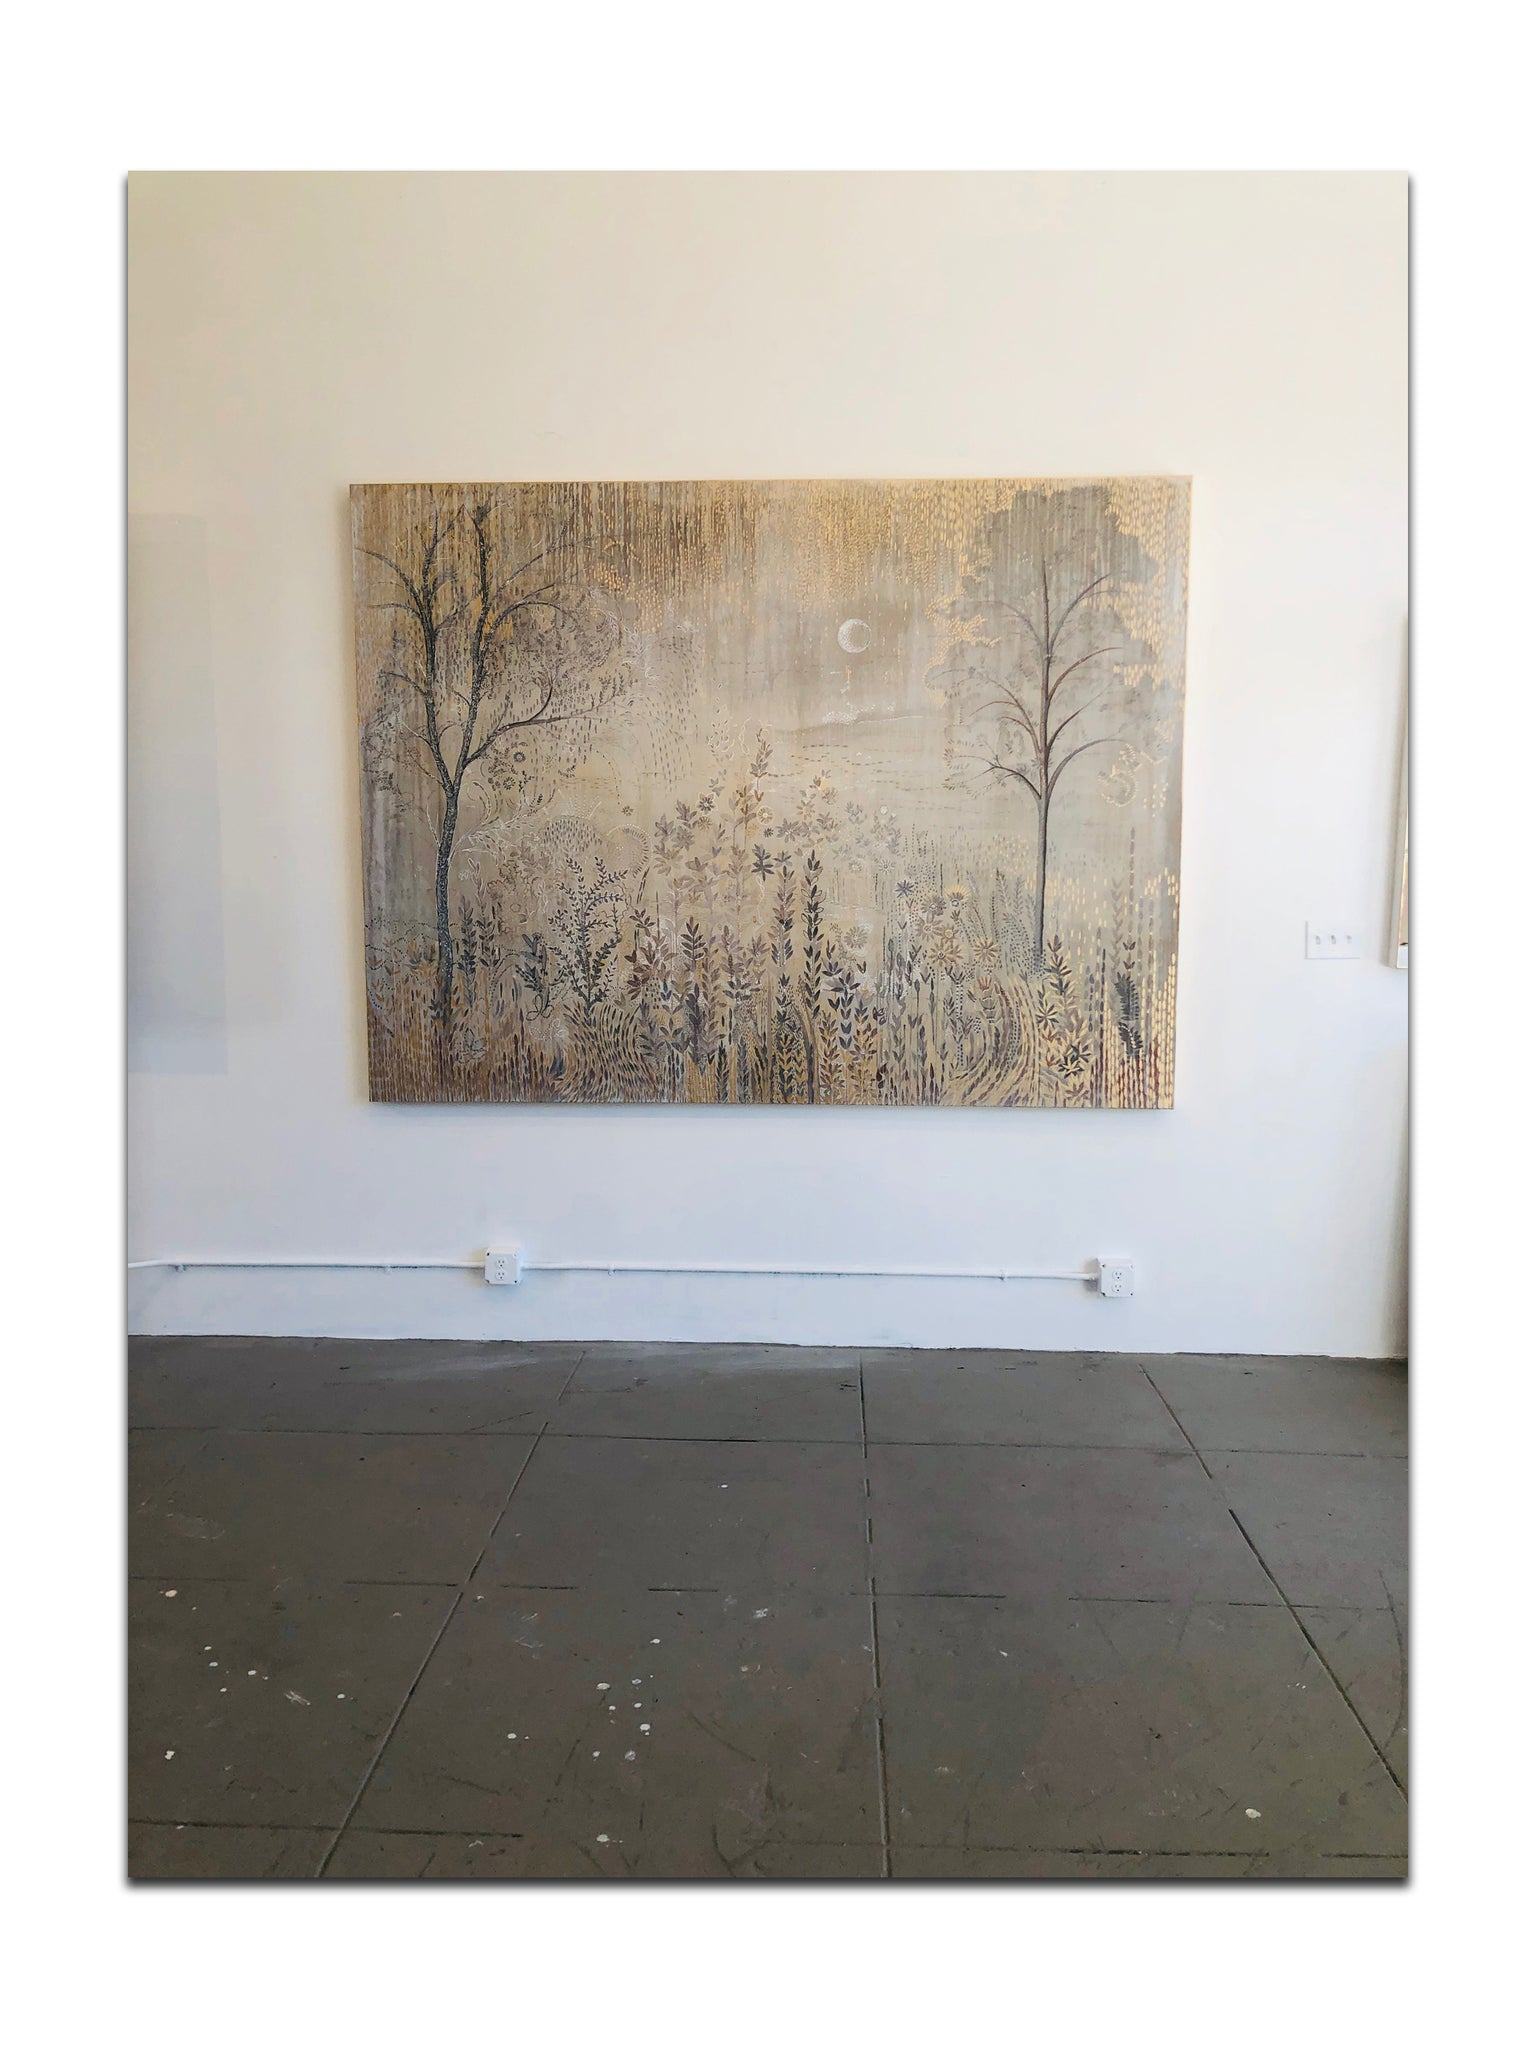 Reverie - 6' x 8' x 2 1/4 Mixed media on canvas with metallic gold embellishments $14,400